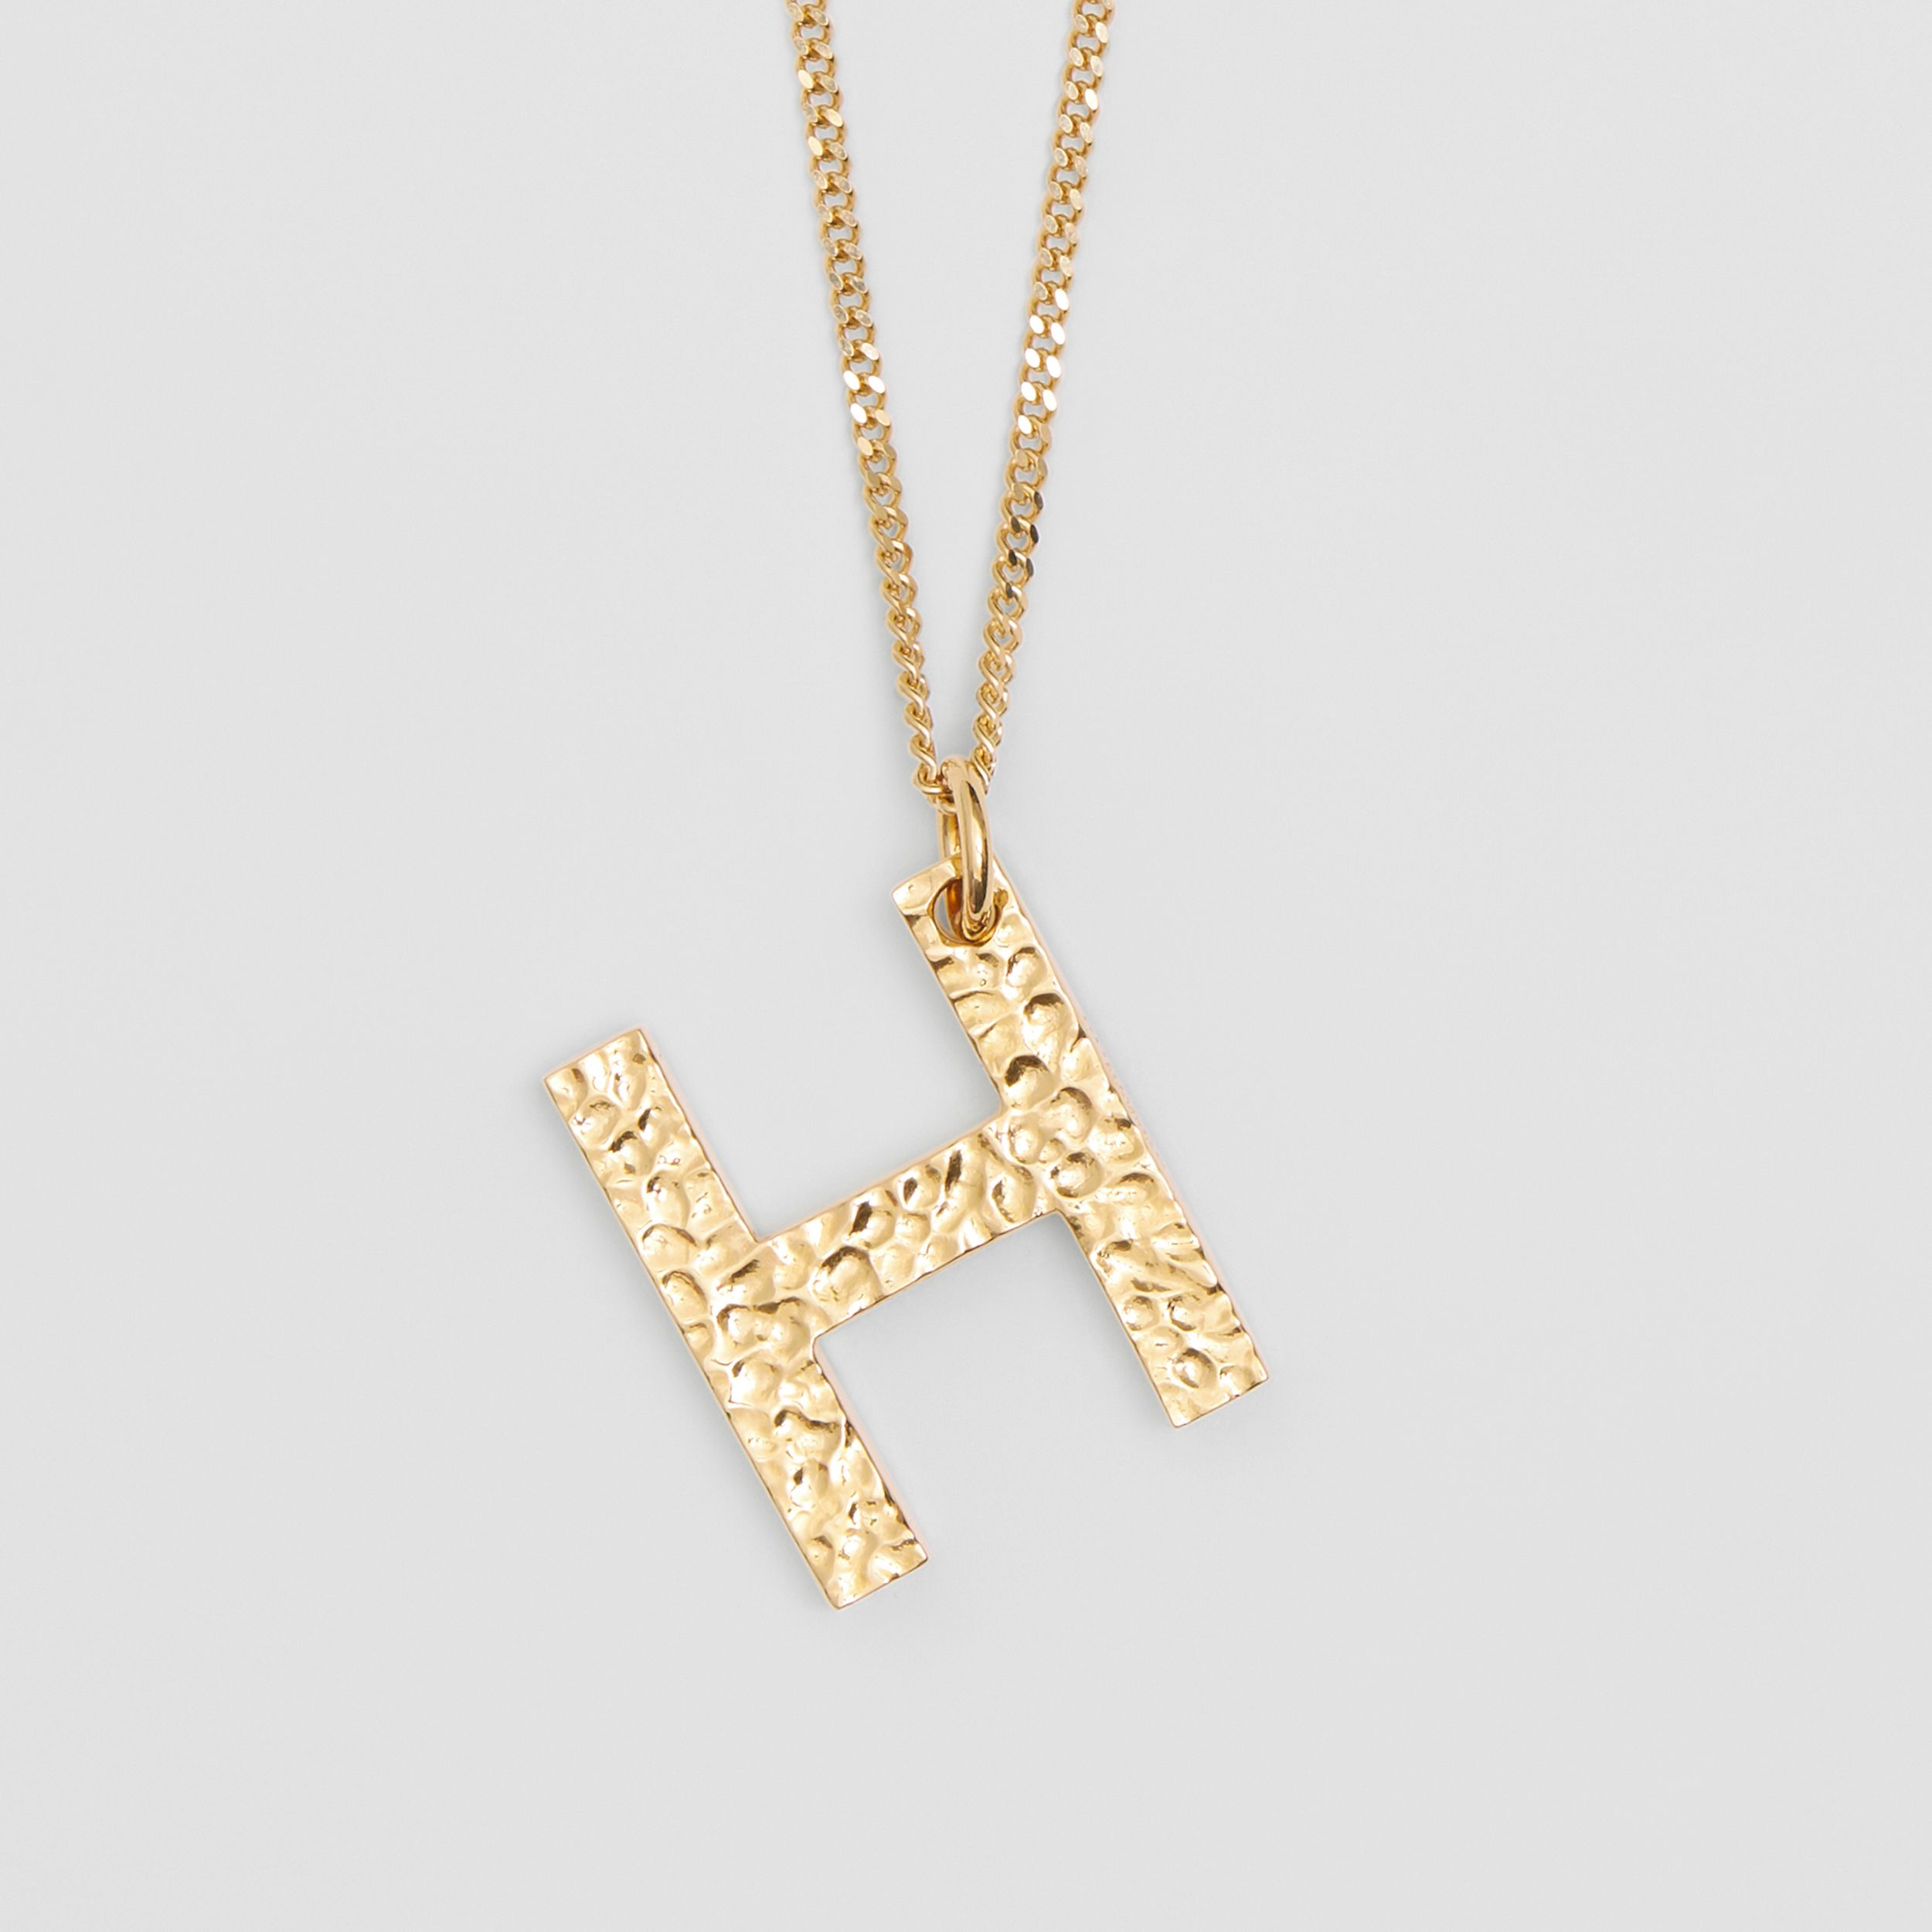 'H' Alphabet Charm Gold-plated Necklace in Light - Women | Burberry - 3